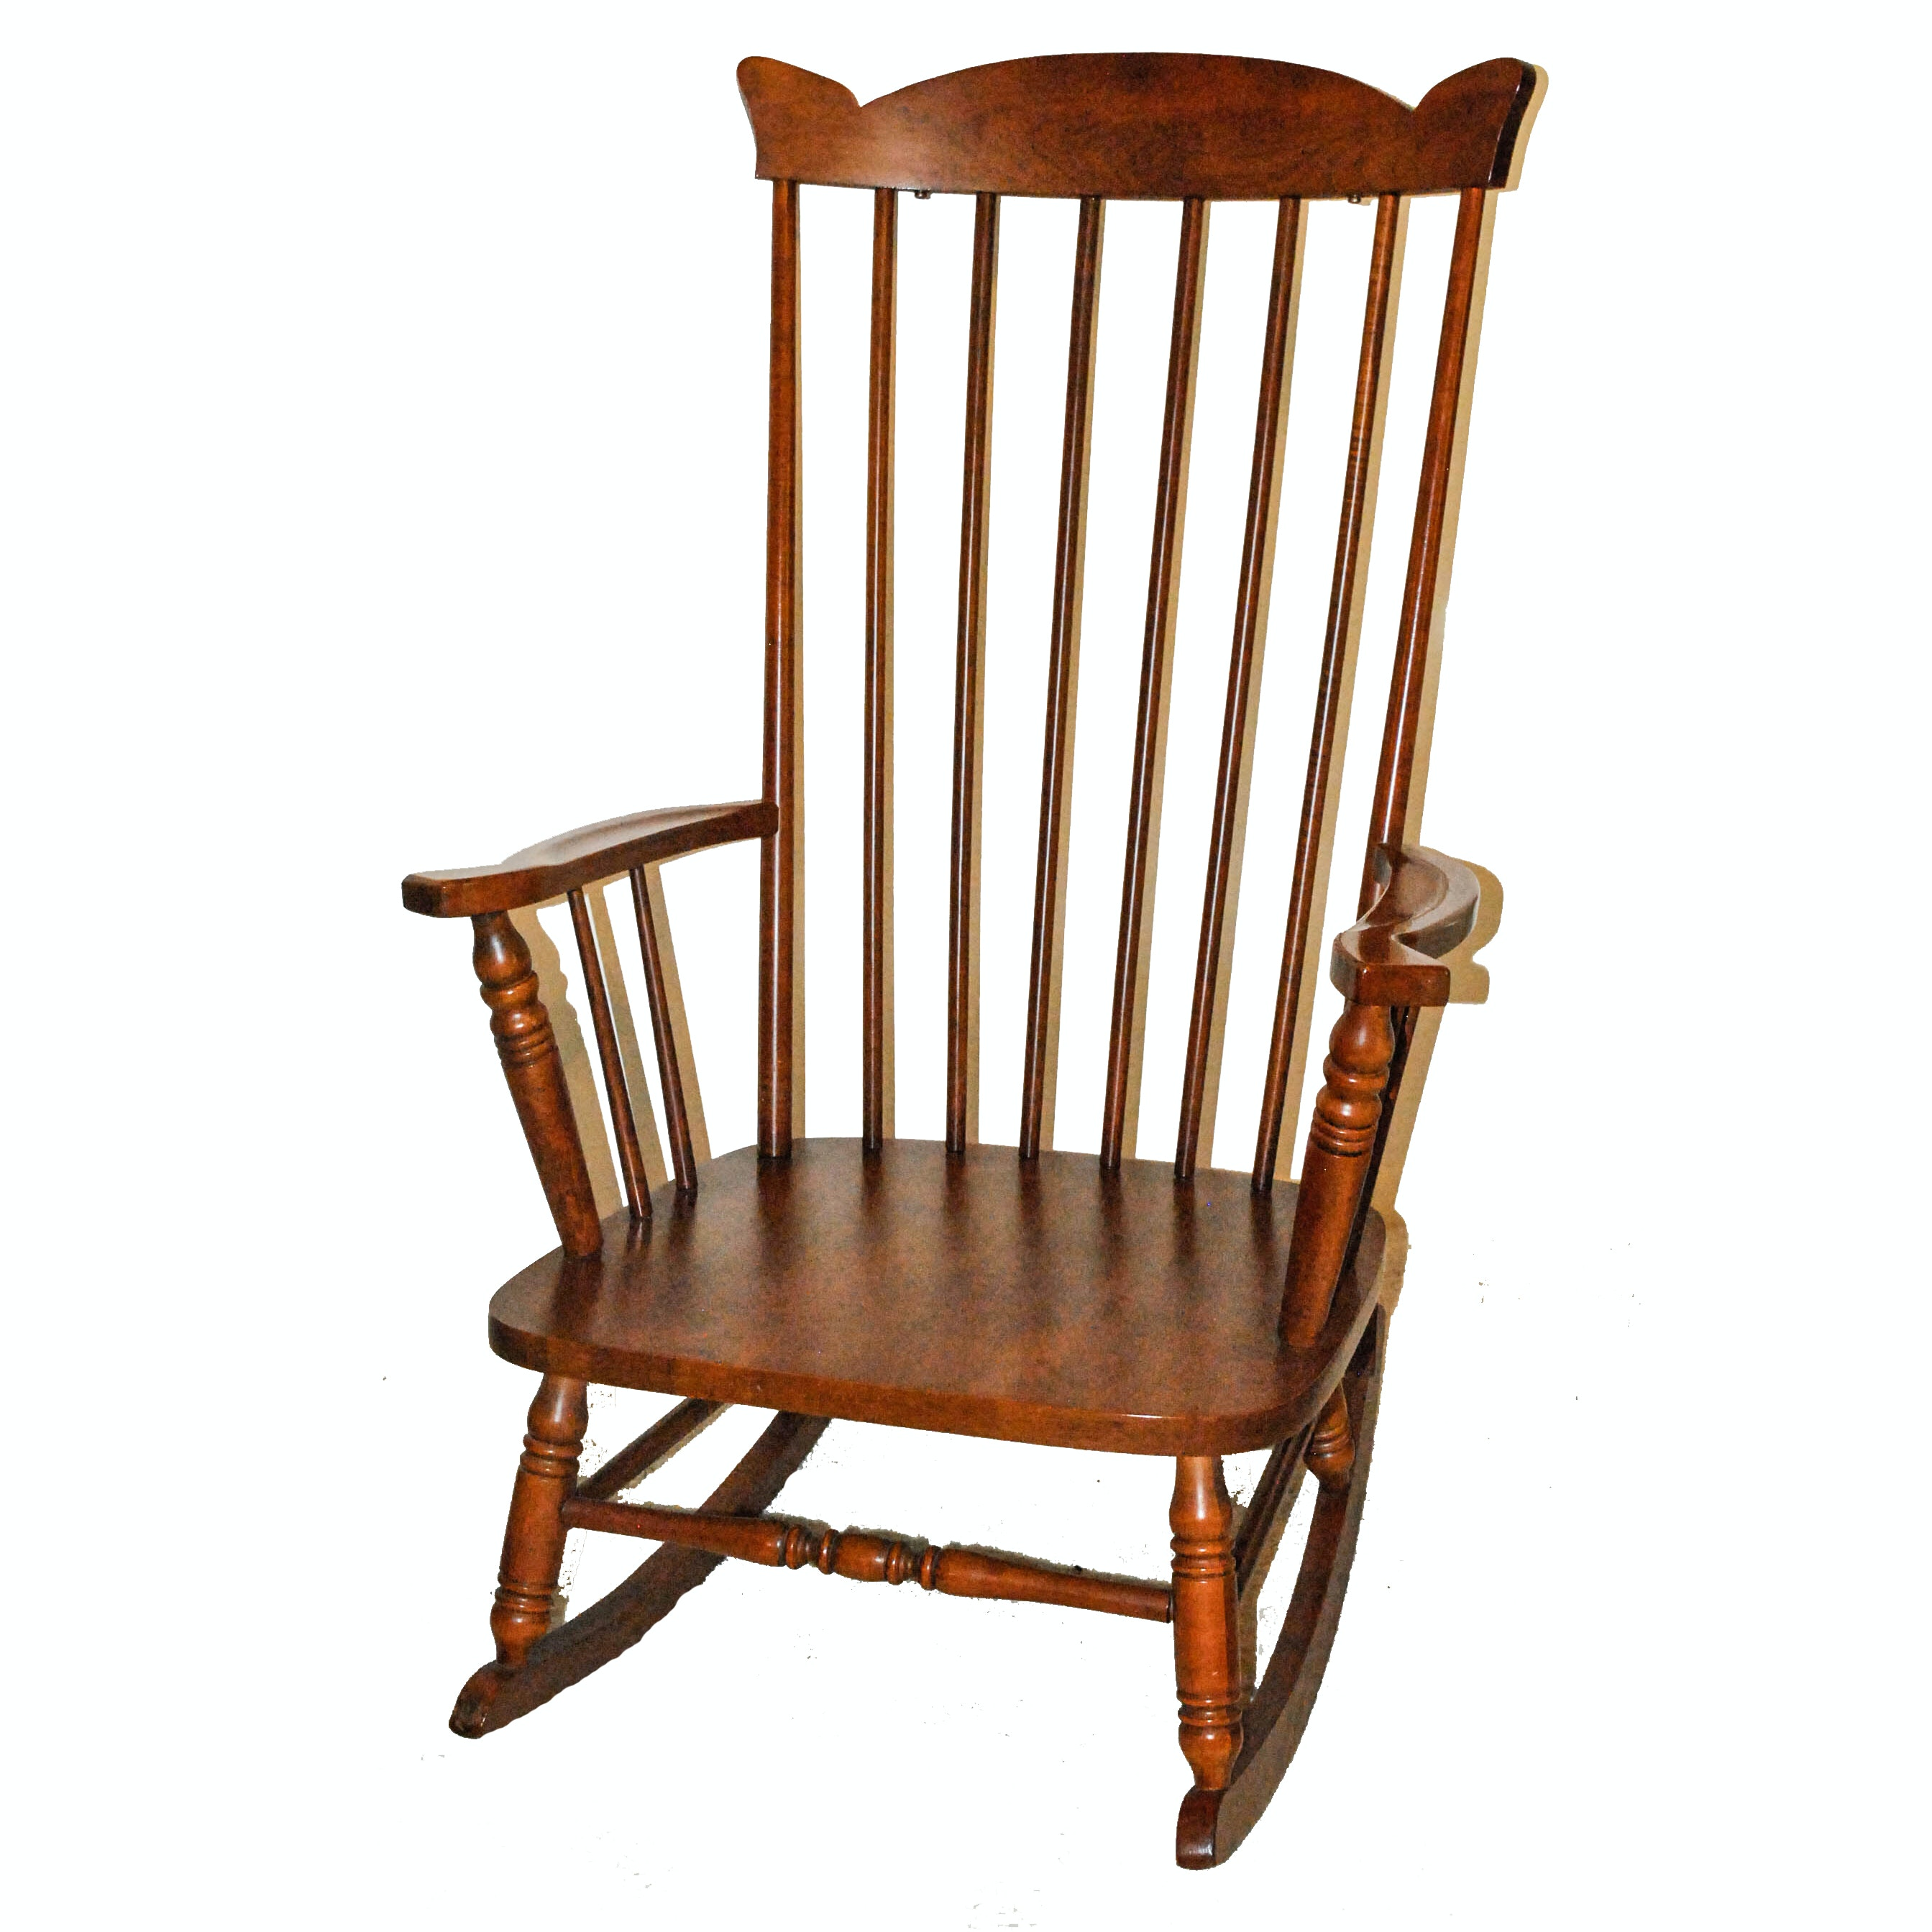 Spindle Back Wooden Rocking Chair